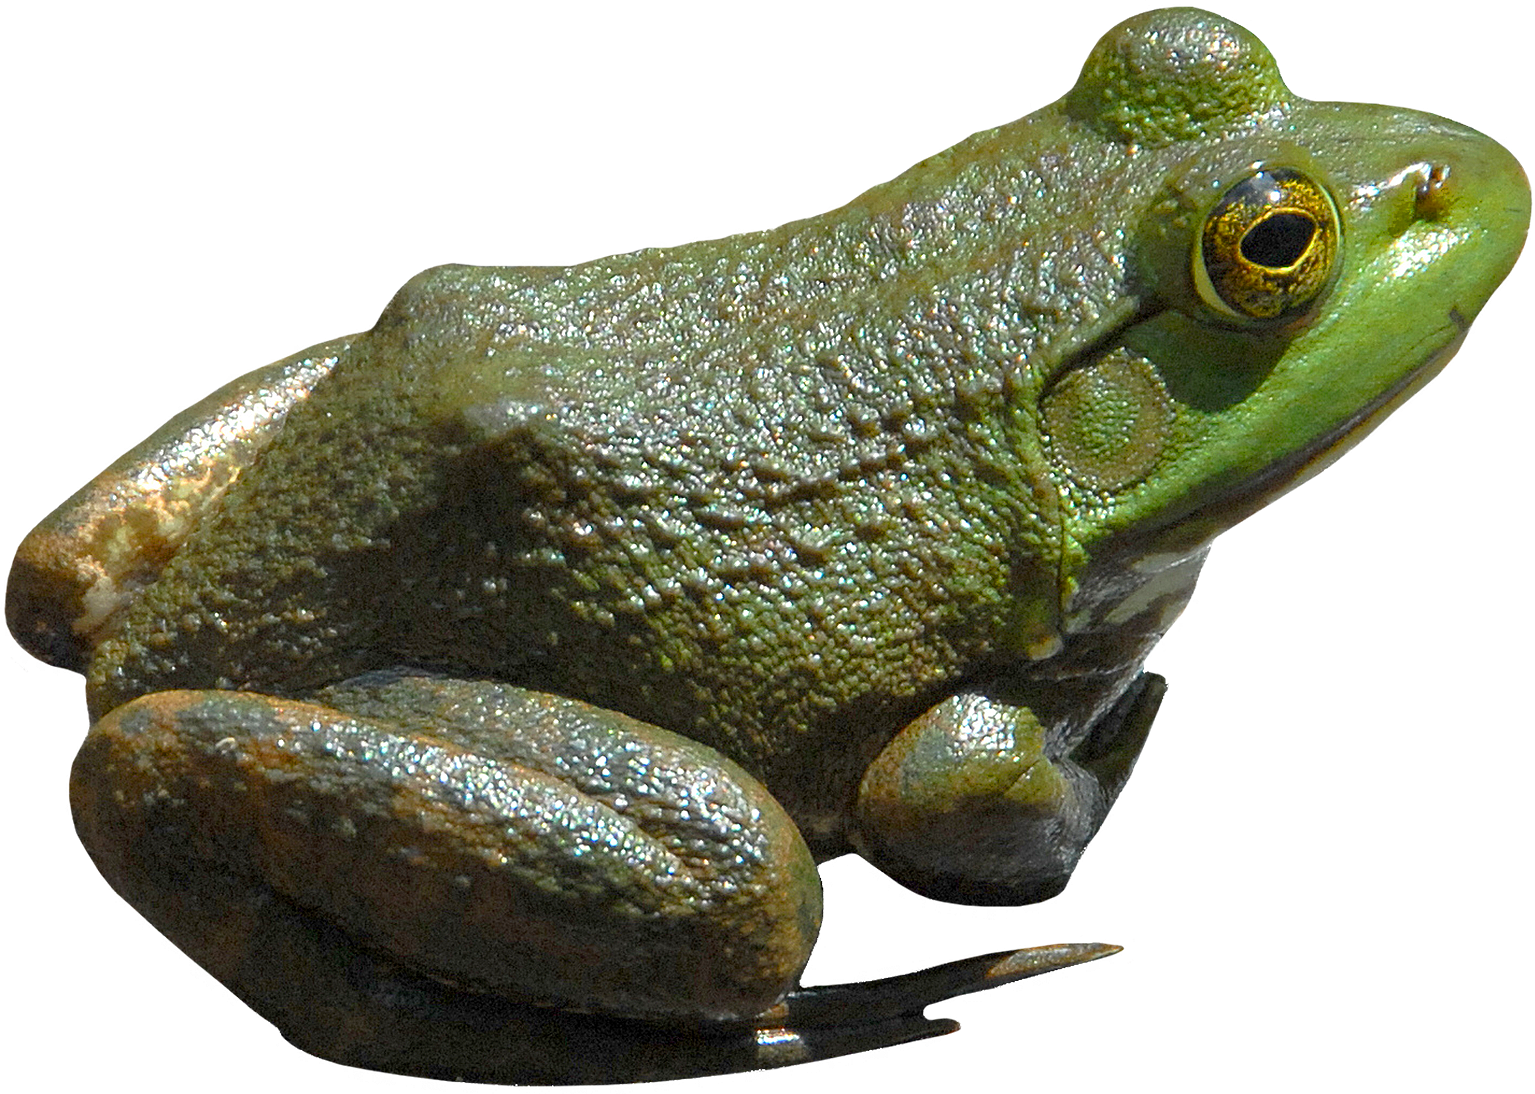 Frog PNG - Frog PNG HD